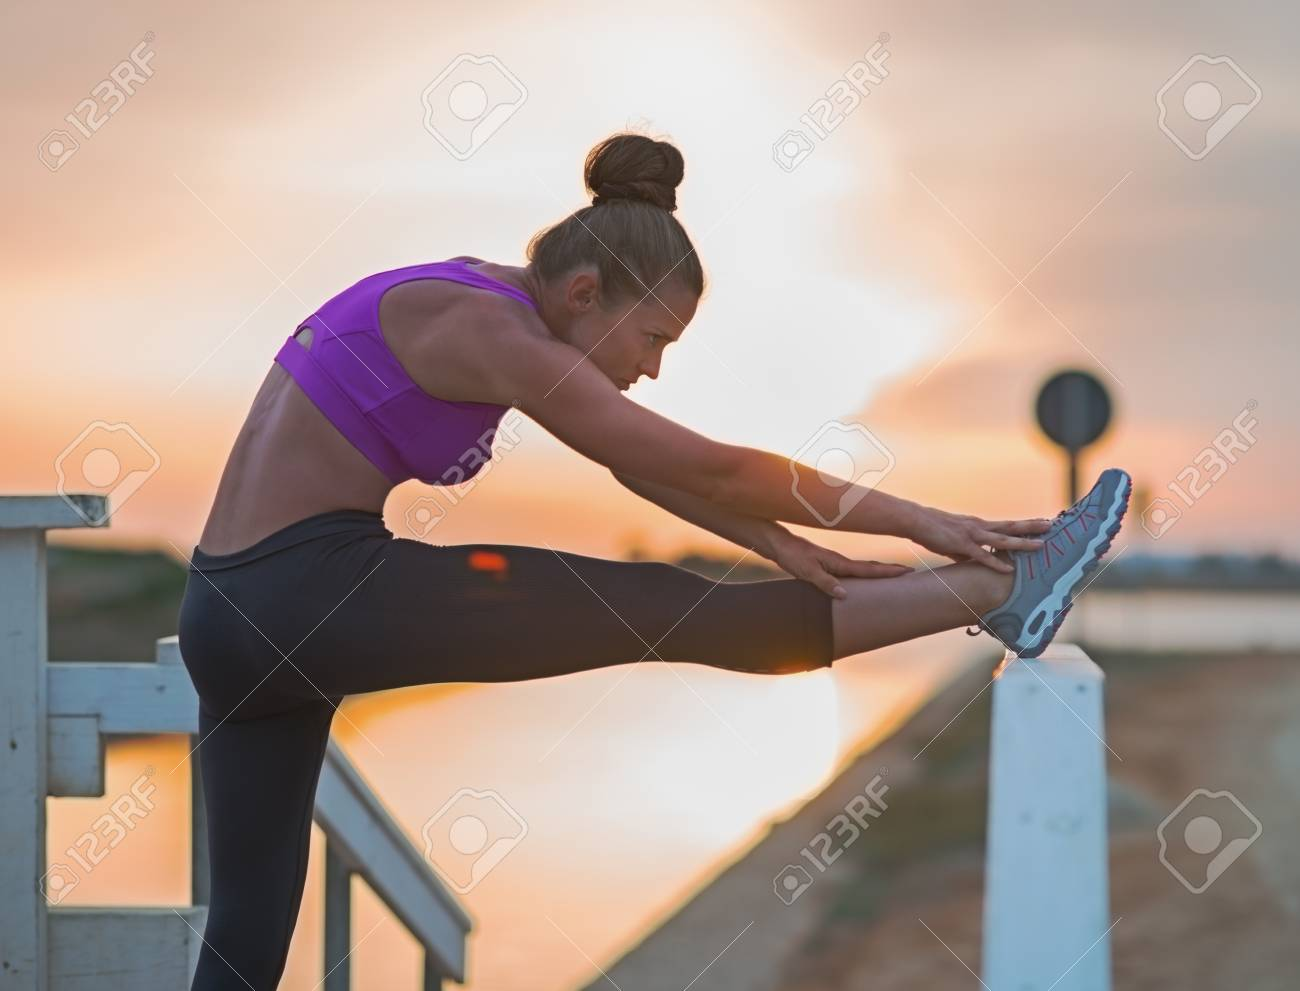 Fitness young woman stretching outdoors in the evening Stock Photo - 23537190